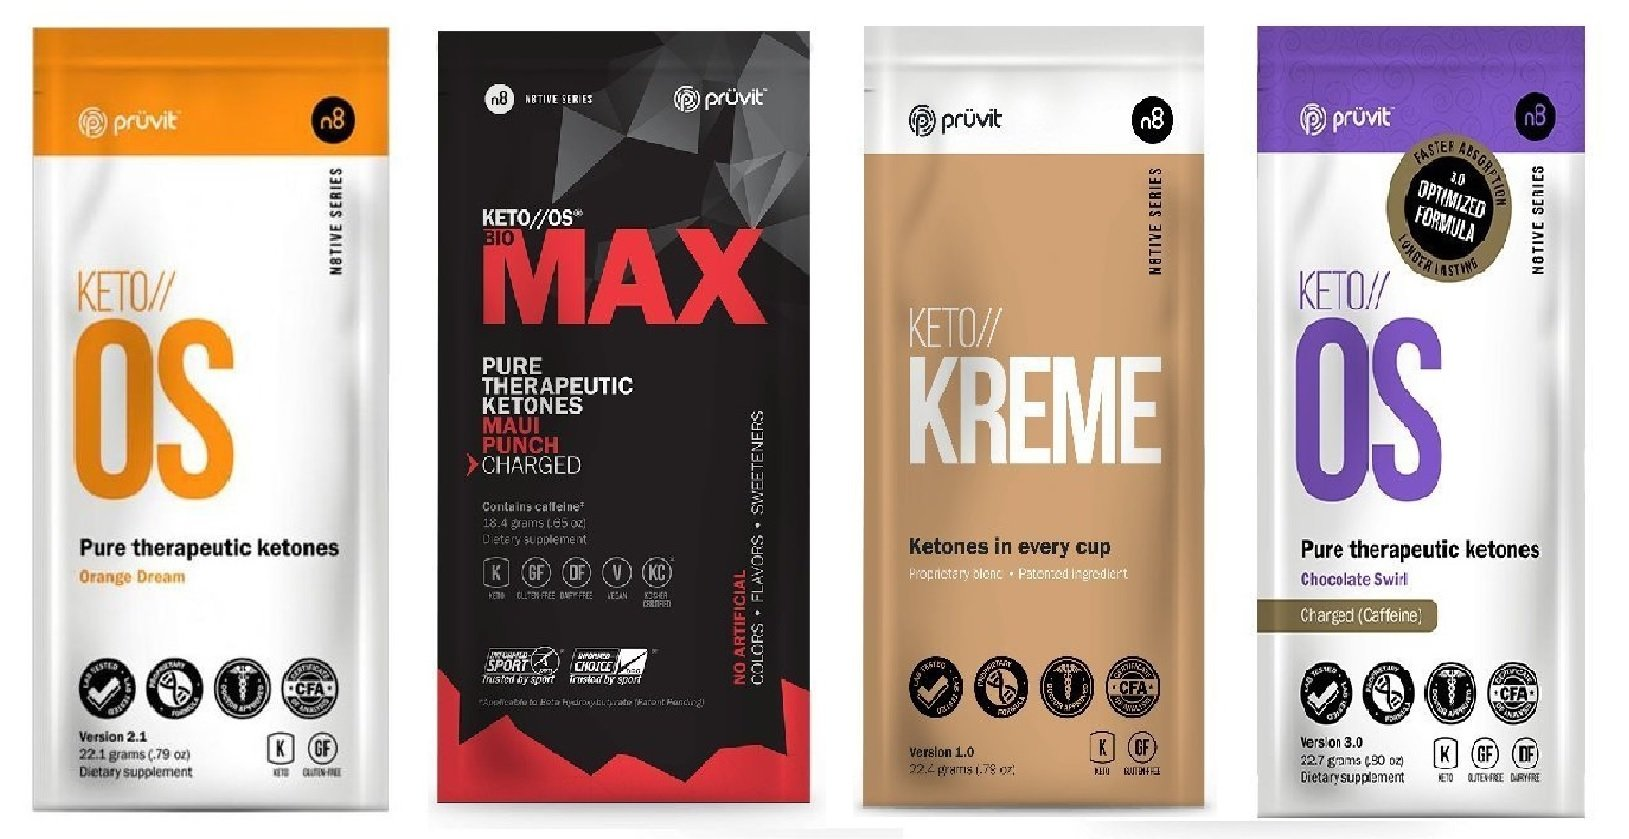 Pruvit Keto//os Charged Ketones 4 Variety Bundle of MAX Maui Punch, Chocolate Swirl,Orange Dream, Kreme guaranteed Ketosis and great for Keto Diet and Lifestyle